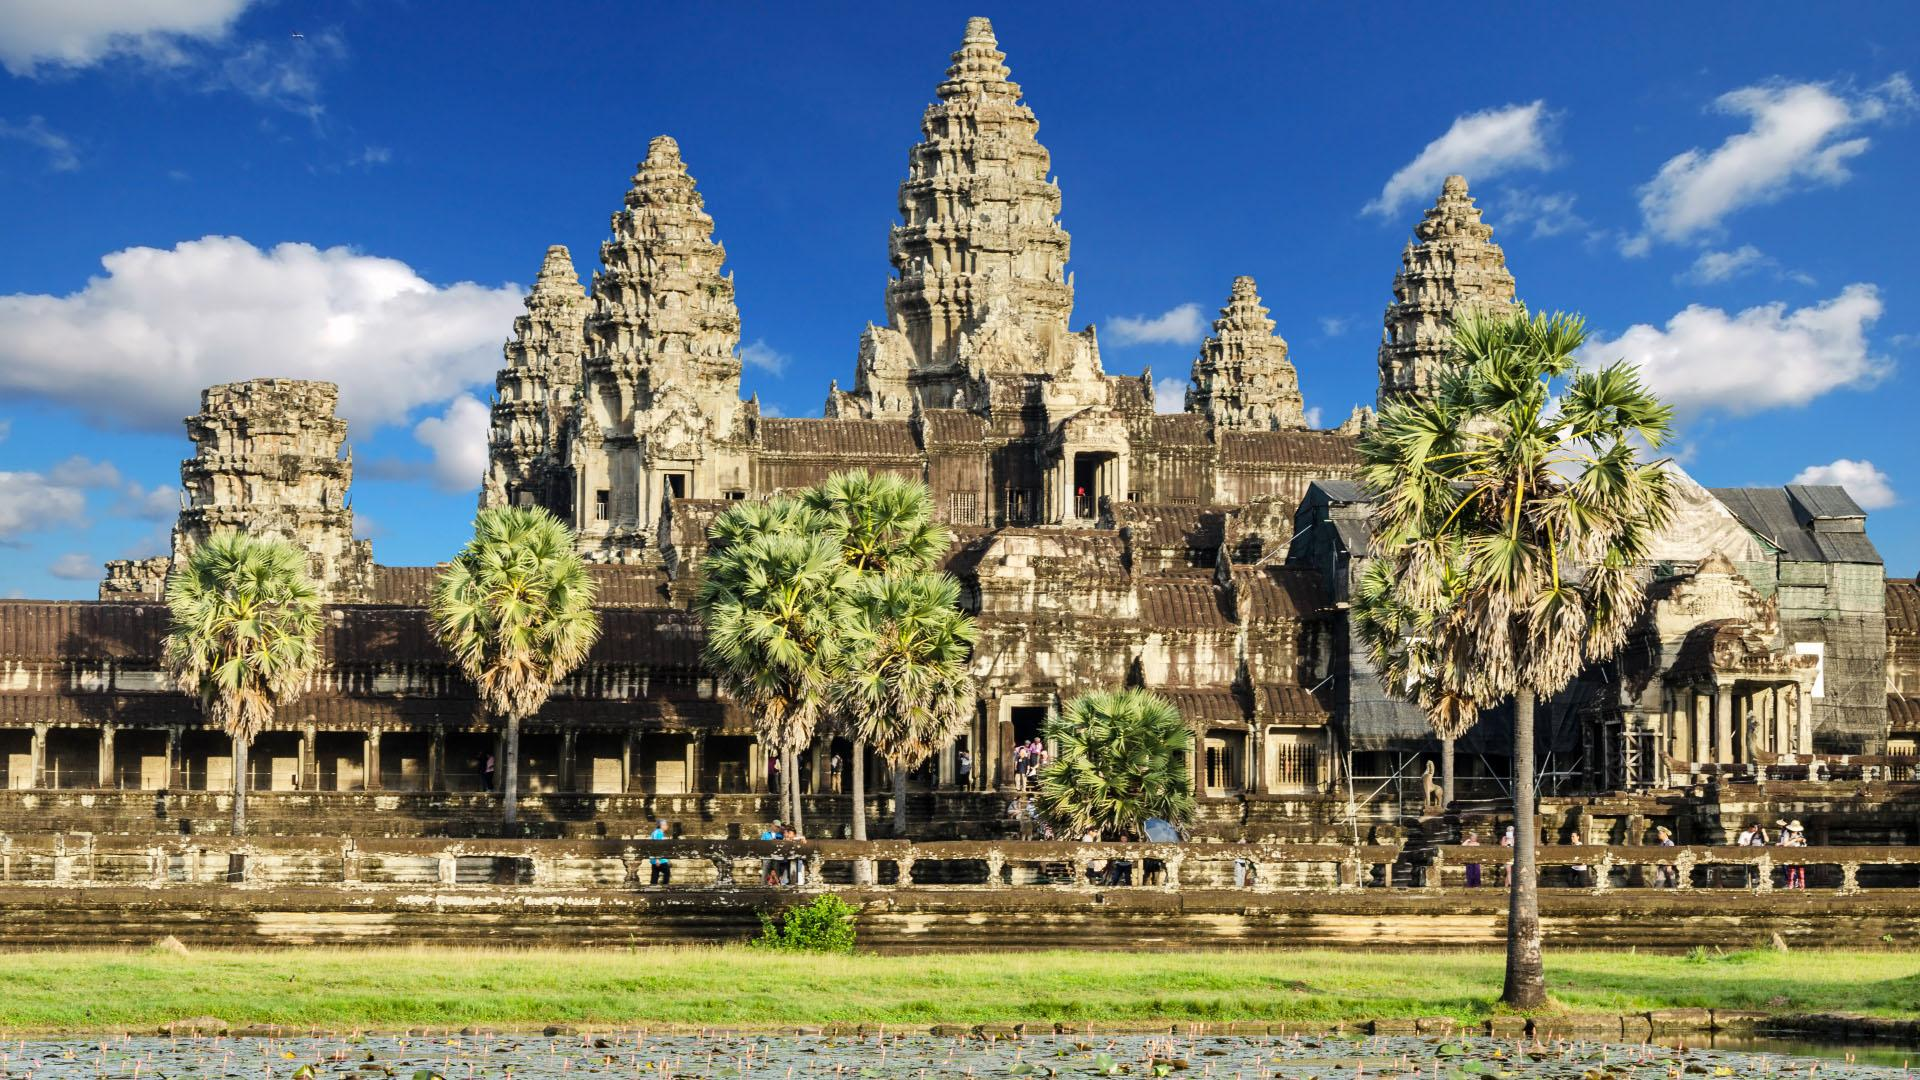 Angkor what? Getting to know Cambodia's most iconic temple